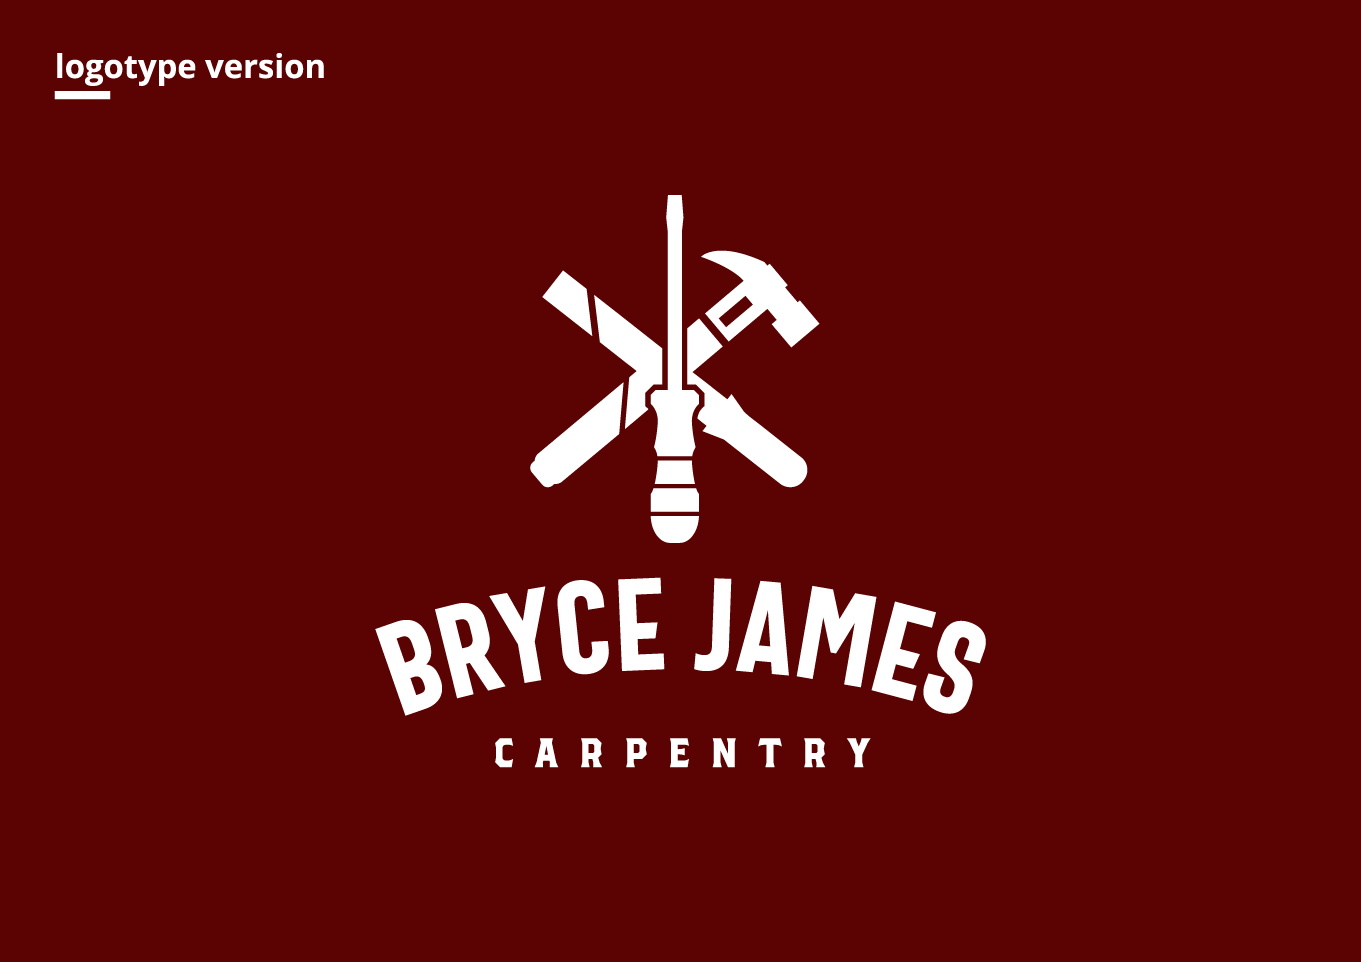 Bryce James Carpentry Logotype